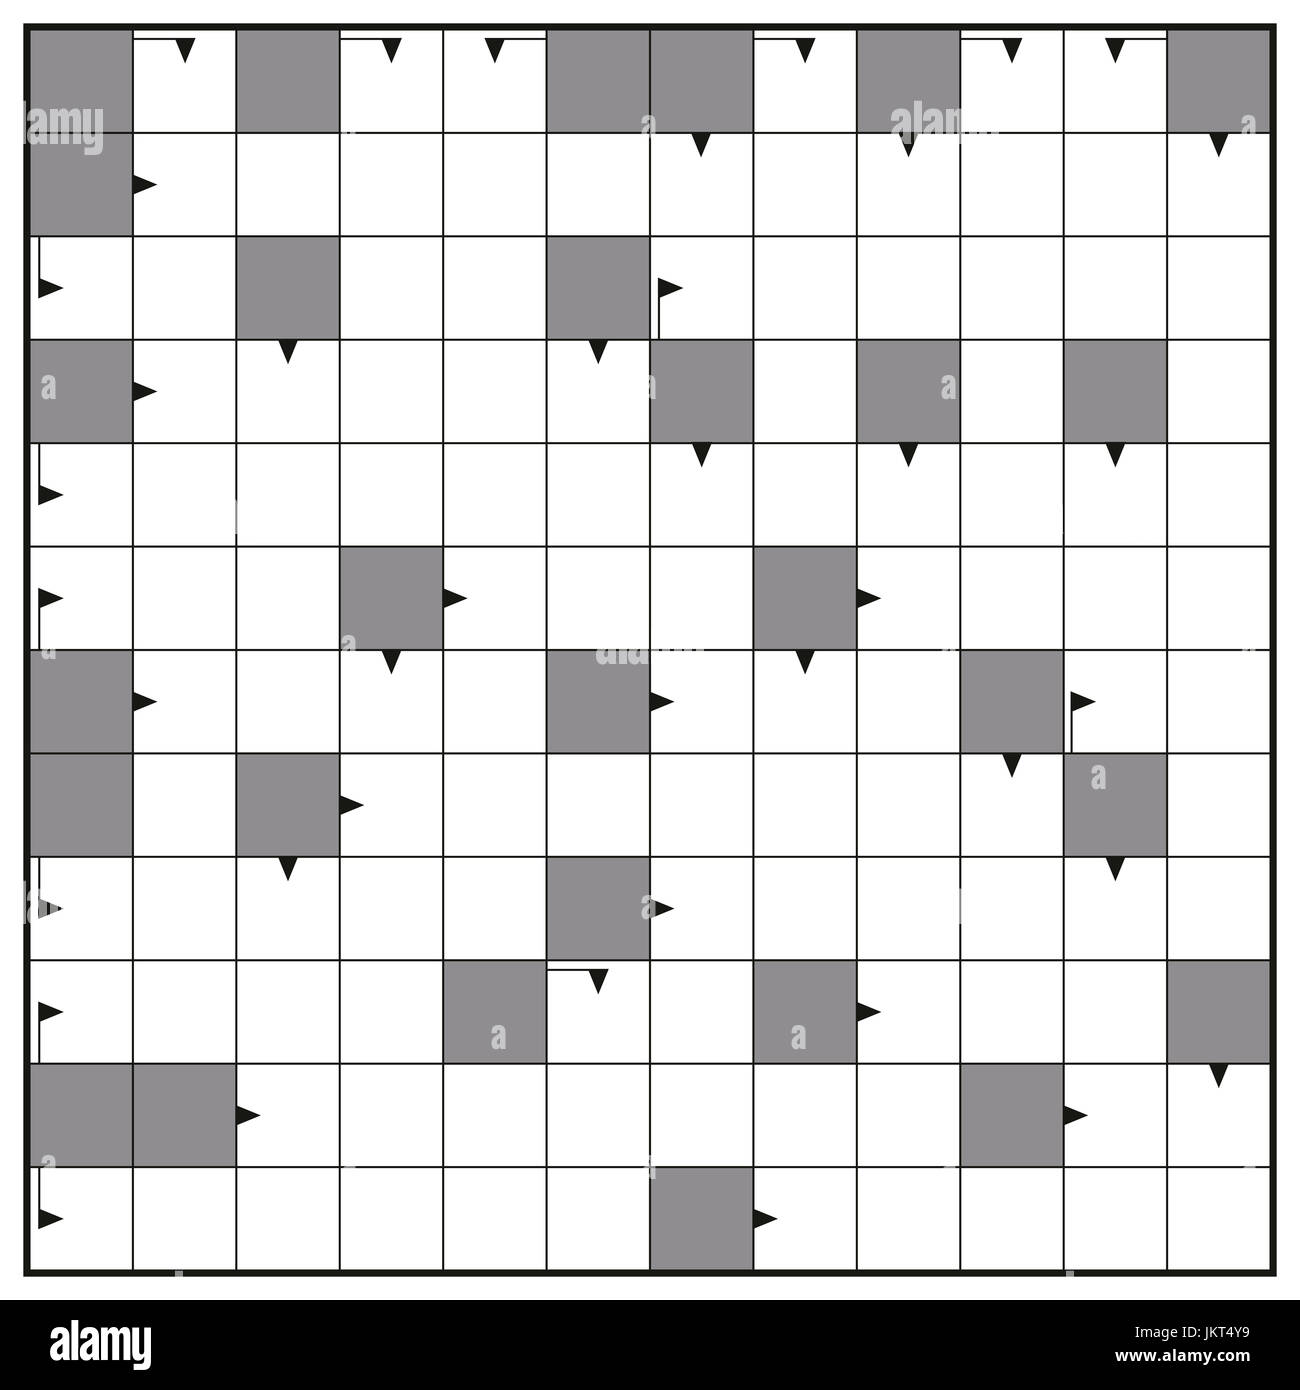 Apa crossword puzzle